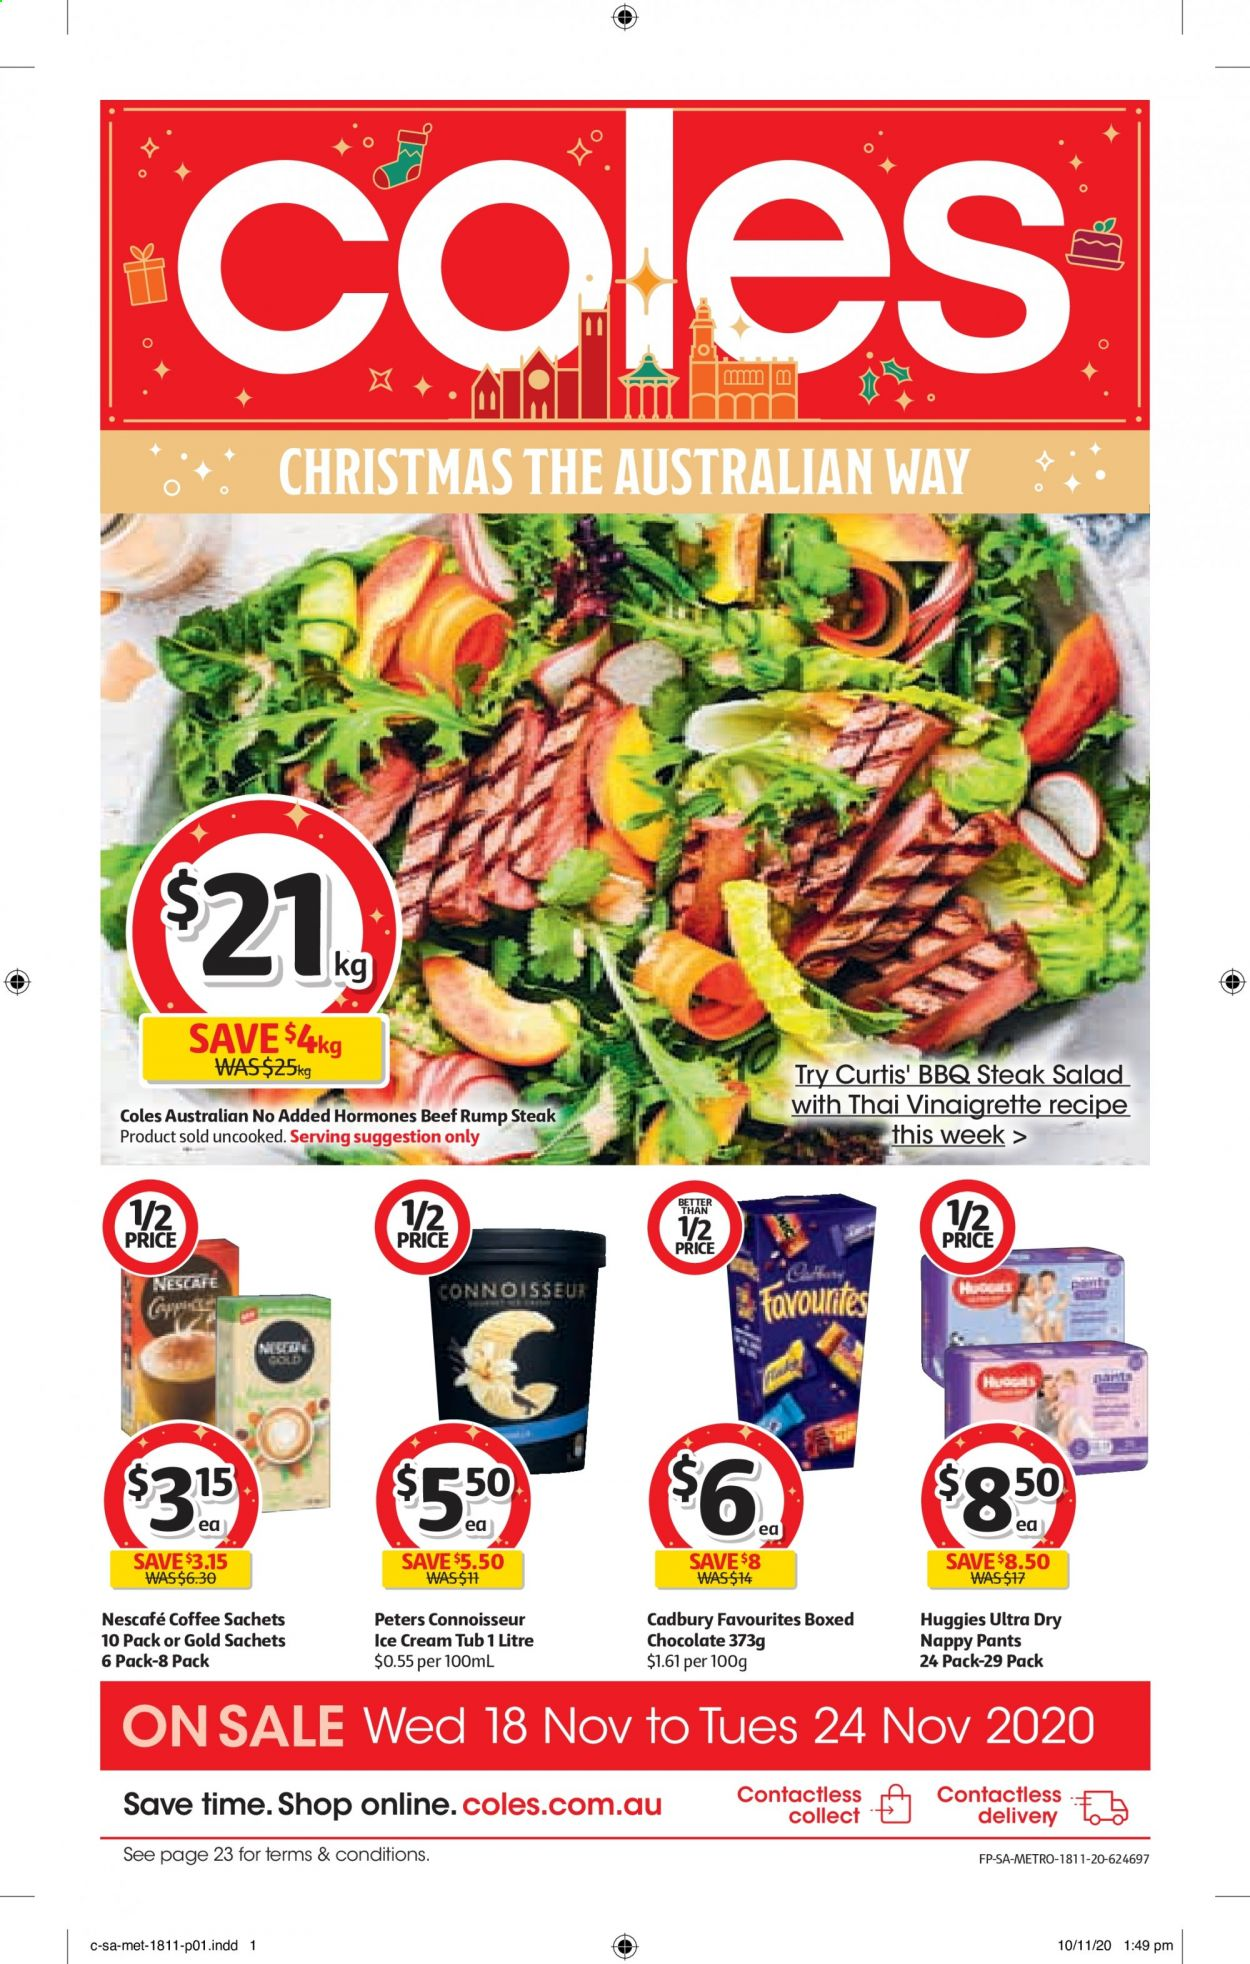 Coles Catalogue - 18.11.2020 - 24.11.2020 - Sales products - beef meat, coffee, vinaigrette dressing, huggies, ice cream, pants, chocolate, steak, barbecue, salad, tub, nescafé, metro. Page 1.